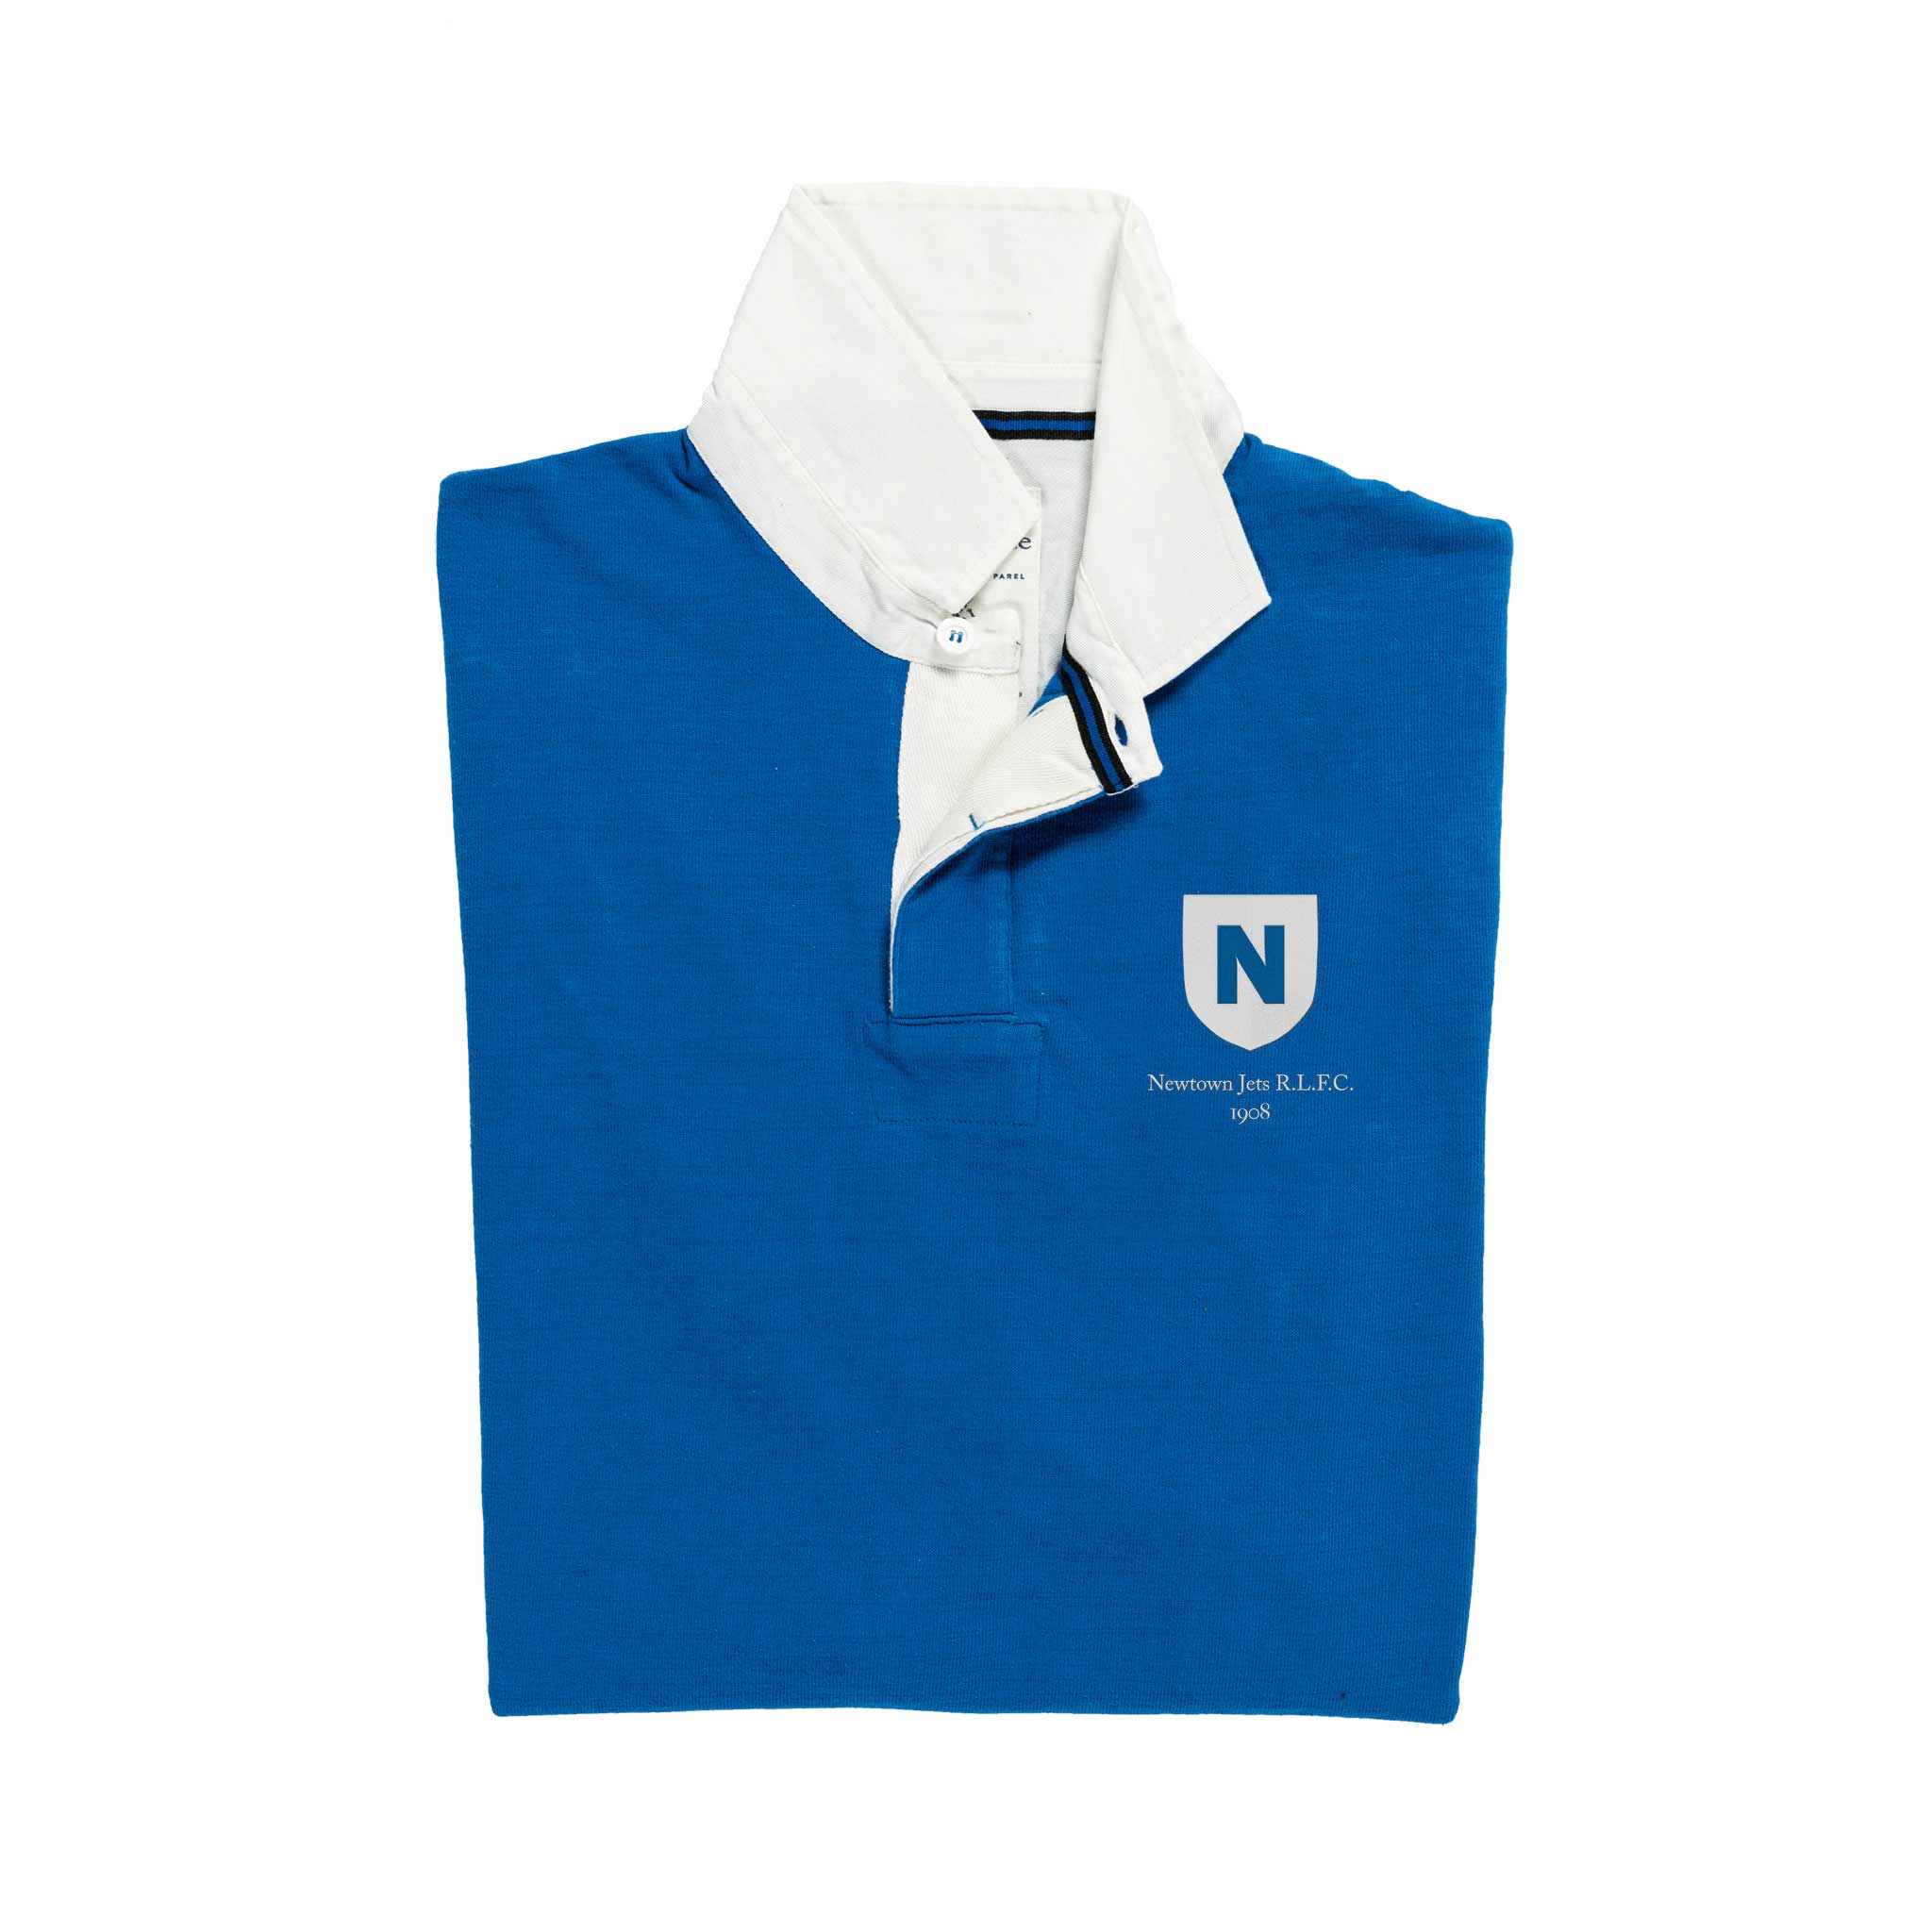 Newtown Jets 1908 Rugby Shirt_Folded